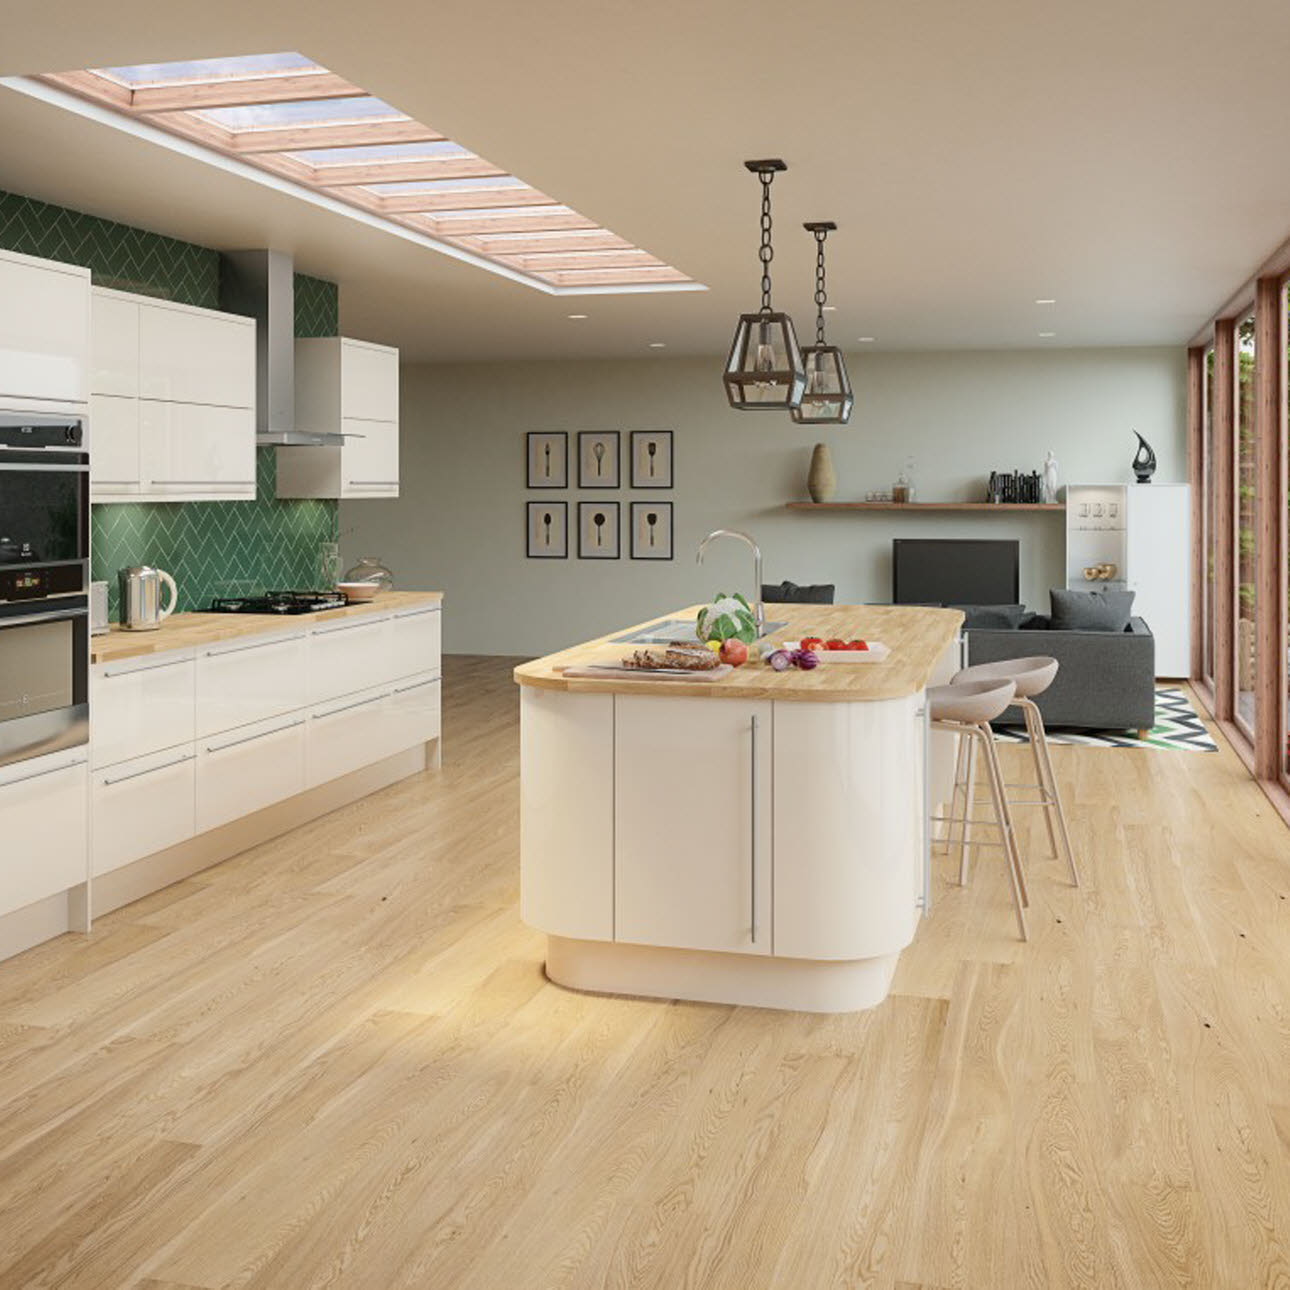 Studio Cream gloss slab kitchen